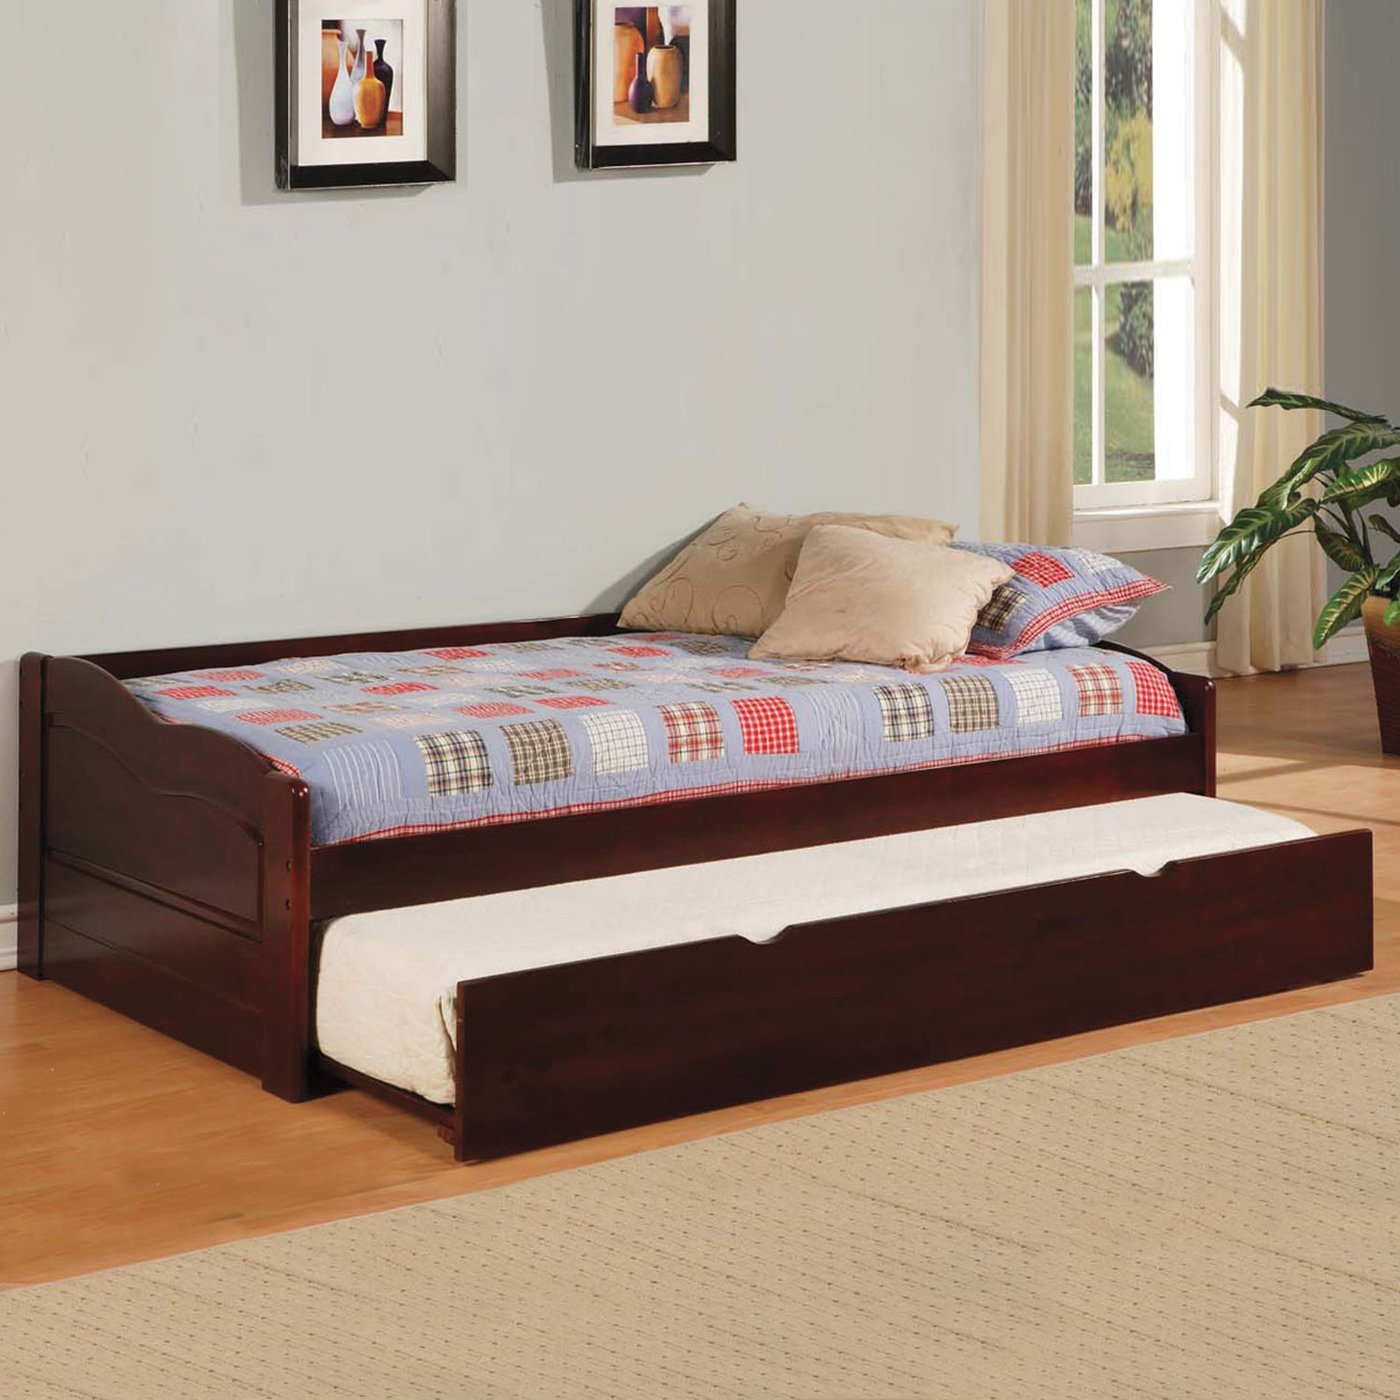 Trundle daybed seaside twin bookcase daybed with trundle Best trundle bed